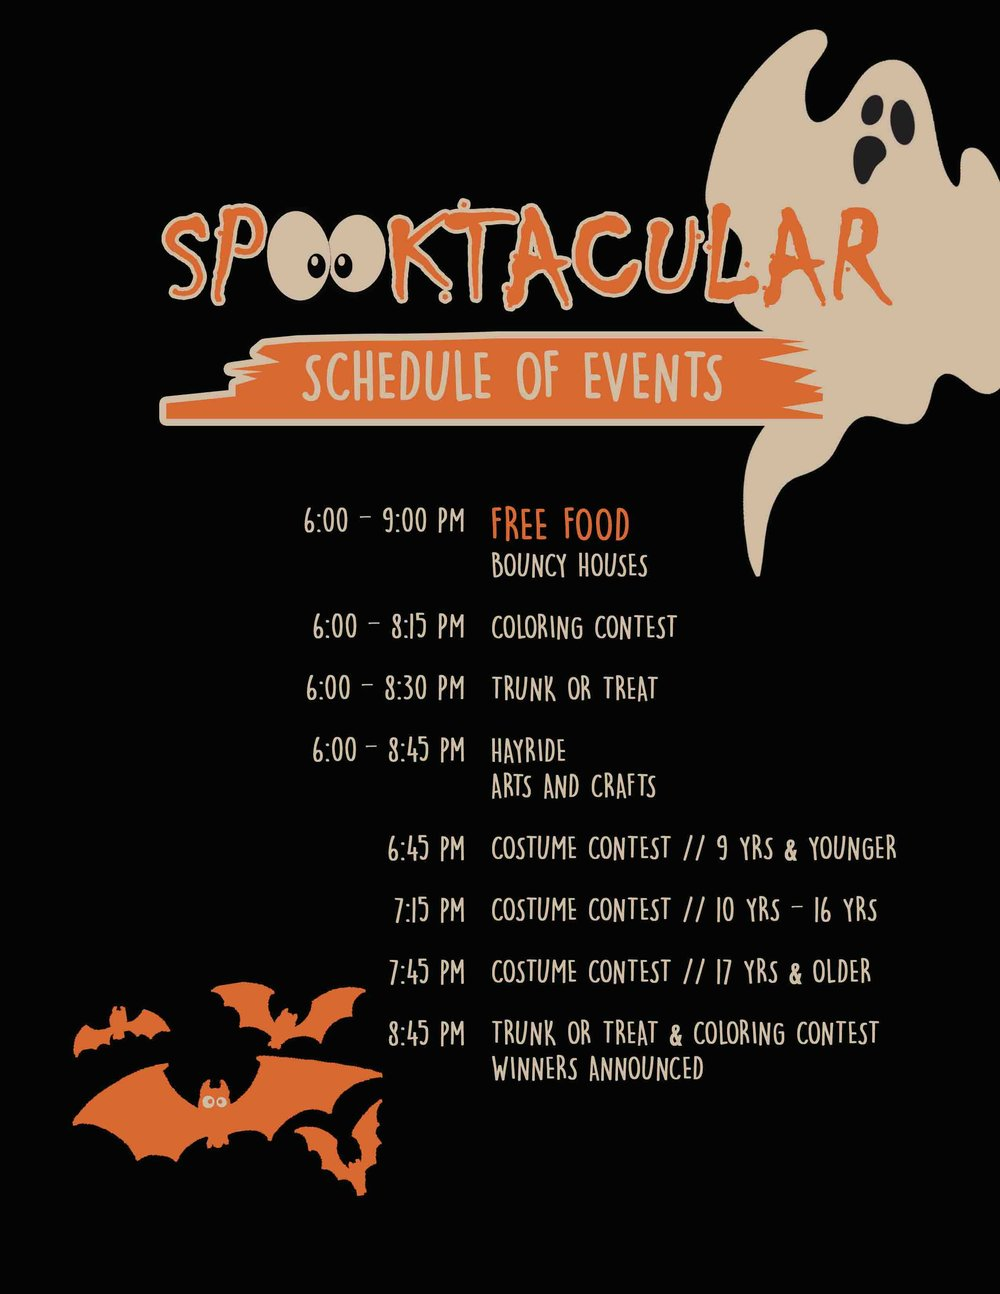 2017_10_ODR_Spooktacular_ScheduleofEvents_Small.jpg